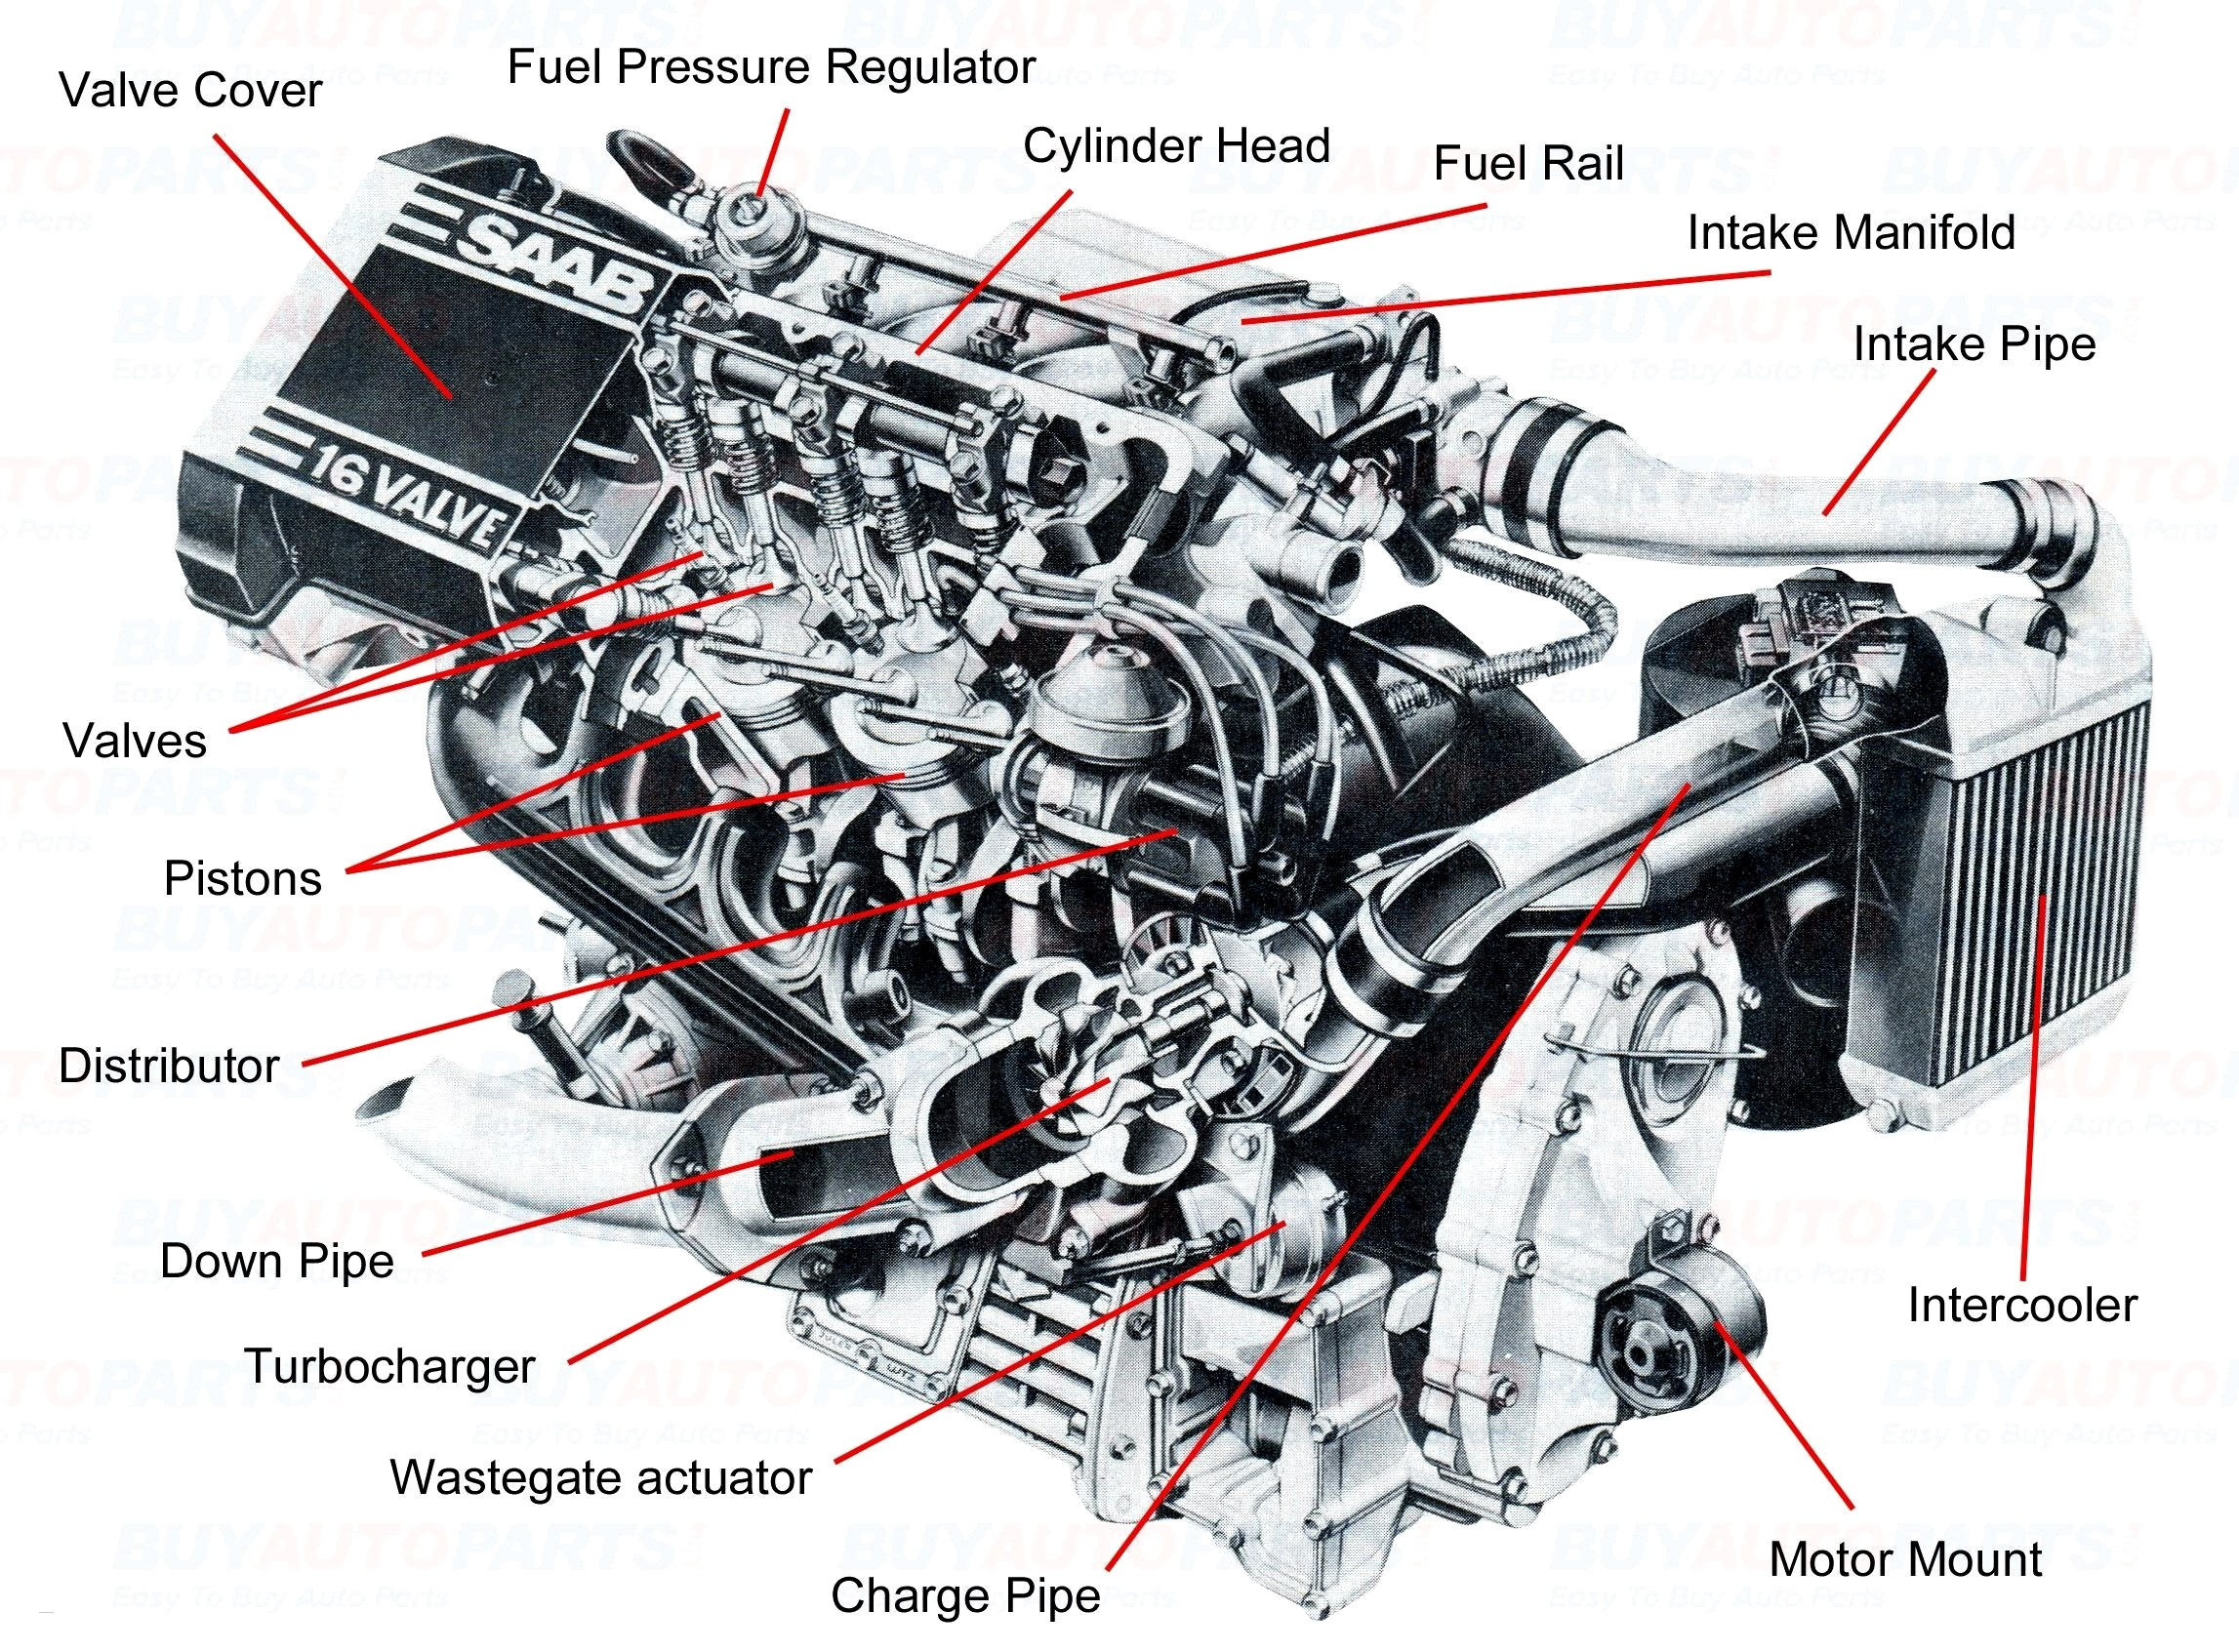 Bus Air Brake System Diagram Car Brake System Diagram Of Bus Air Brake System Diagram Brakes System Diagram – Diagram Braking System Brake Diagram Car